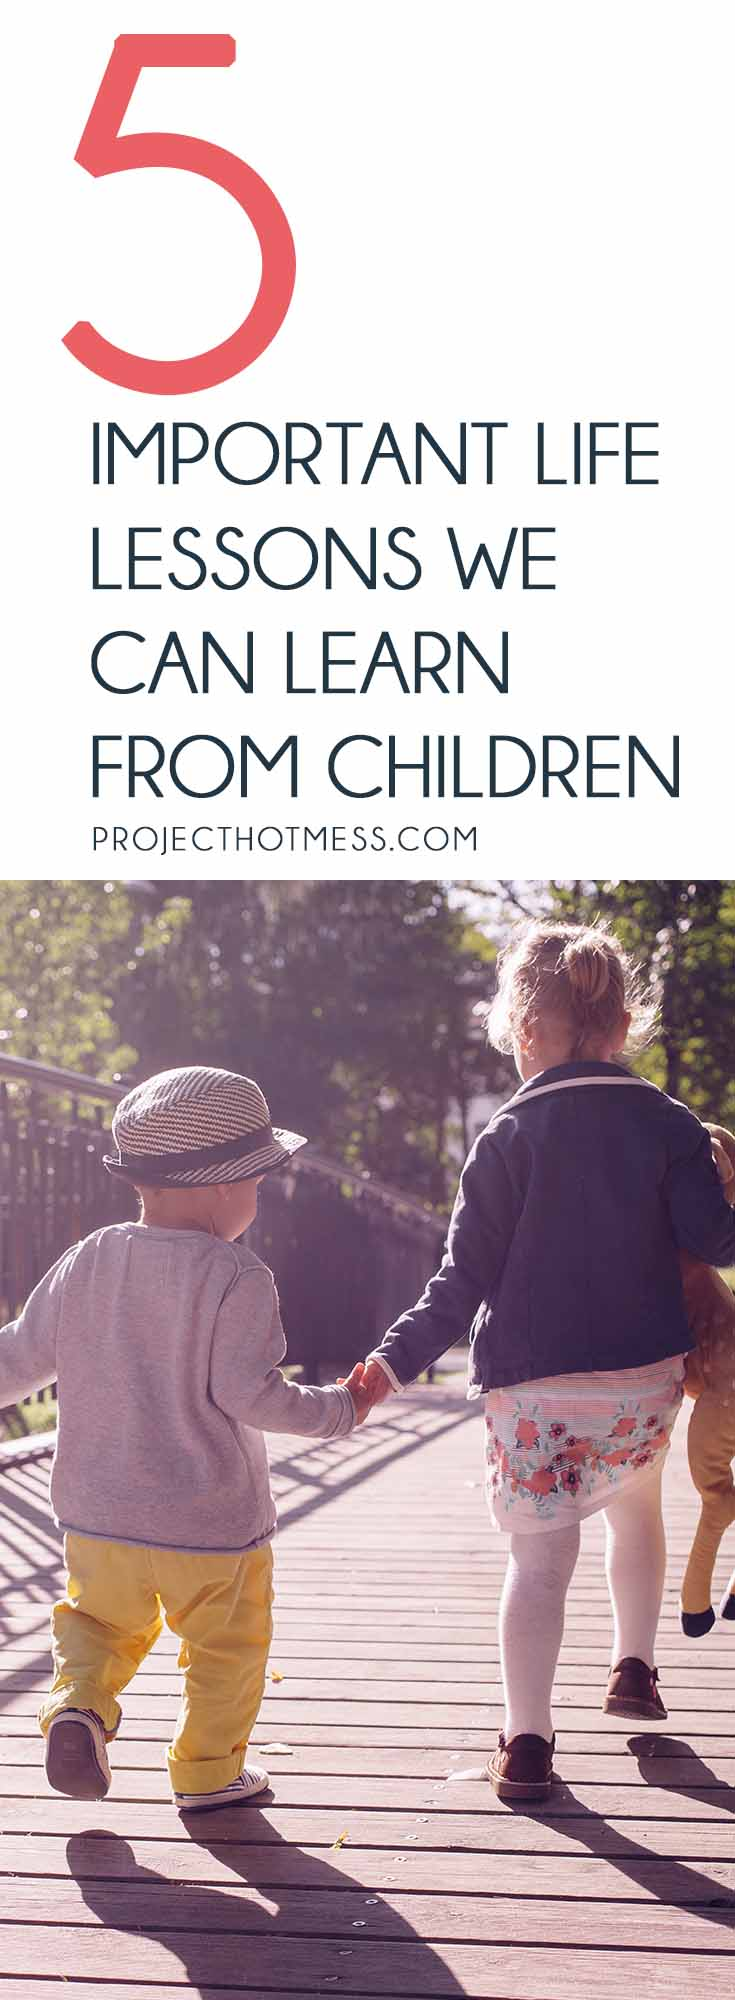 As adults, we are the ones who are supposed to be teaching our children about the world and life, but there are life lessons we can learn from children too. Parenting   Parenting Advice   Mom Life   Parenting Goals   Parenting Ideas   Parenting Tips   Parenting Types   Parenting Hacks   Positive Parenting   Parenthood   Motherhood   Surviving Motherhood   Life Lessons